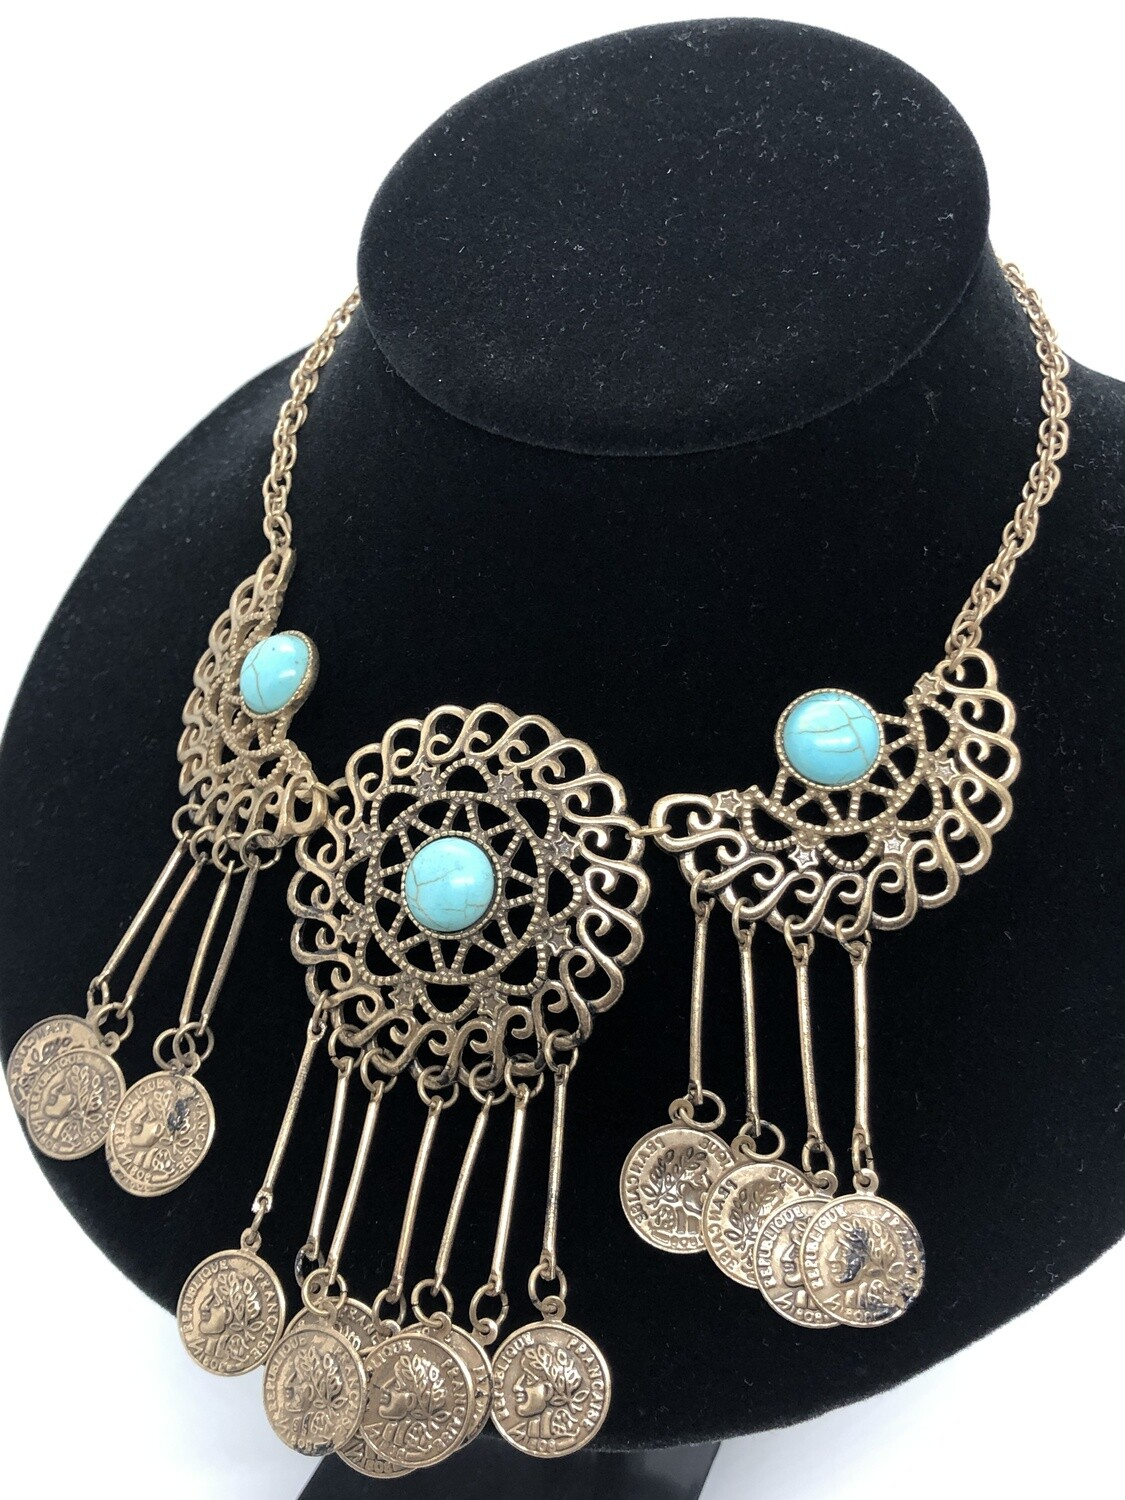 Brushed Gold Turquoise Medallion & Coin Necklace